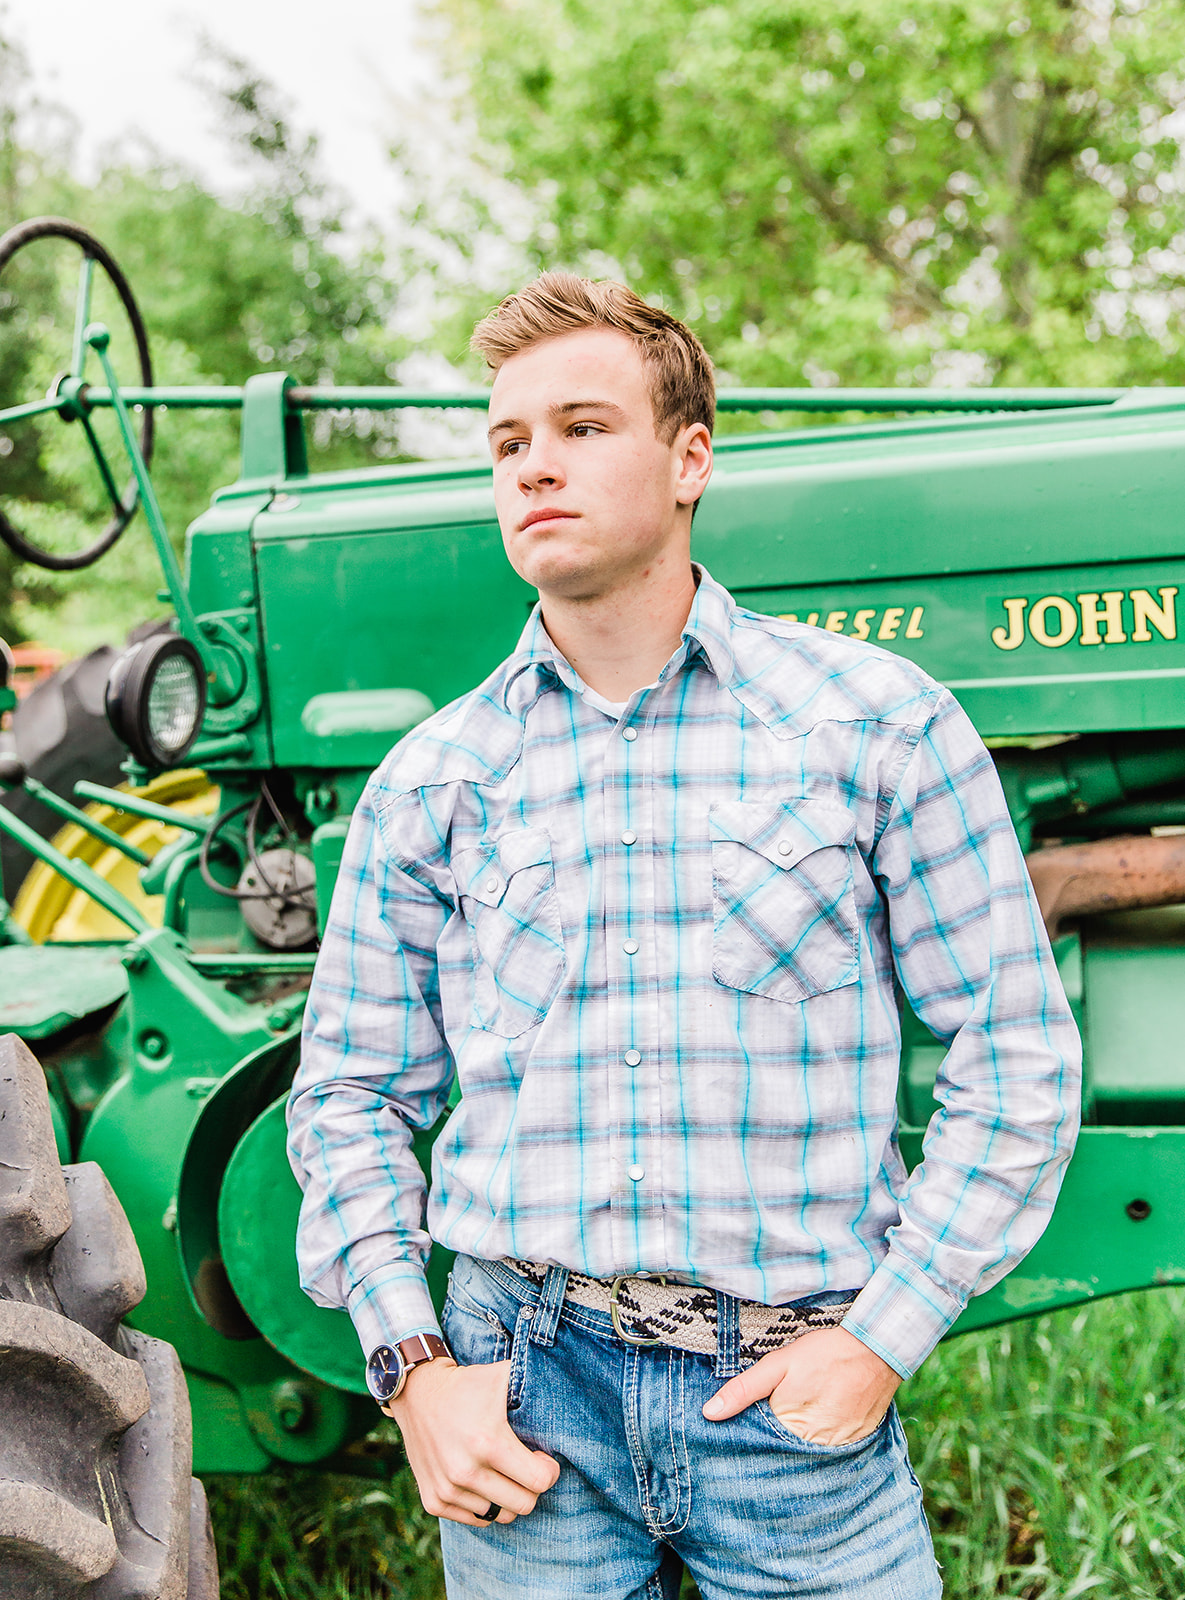 cowboy senior pictures bella alder photography professional portraits seniors session high school graduate tractor cache valley paradise utah photographer #bellaalderphoto #seniorpictures #cowboy #portraits #cachevalley #paradiseutah #loganutahphotographer #utahseniors #utahportraitphotographer #utahseniorphotos #seniorphotos #graduation